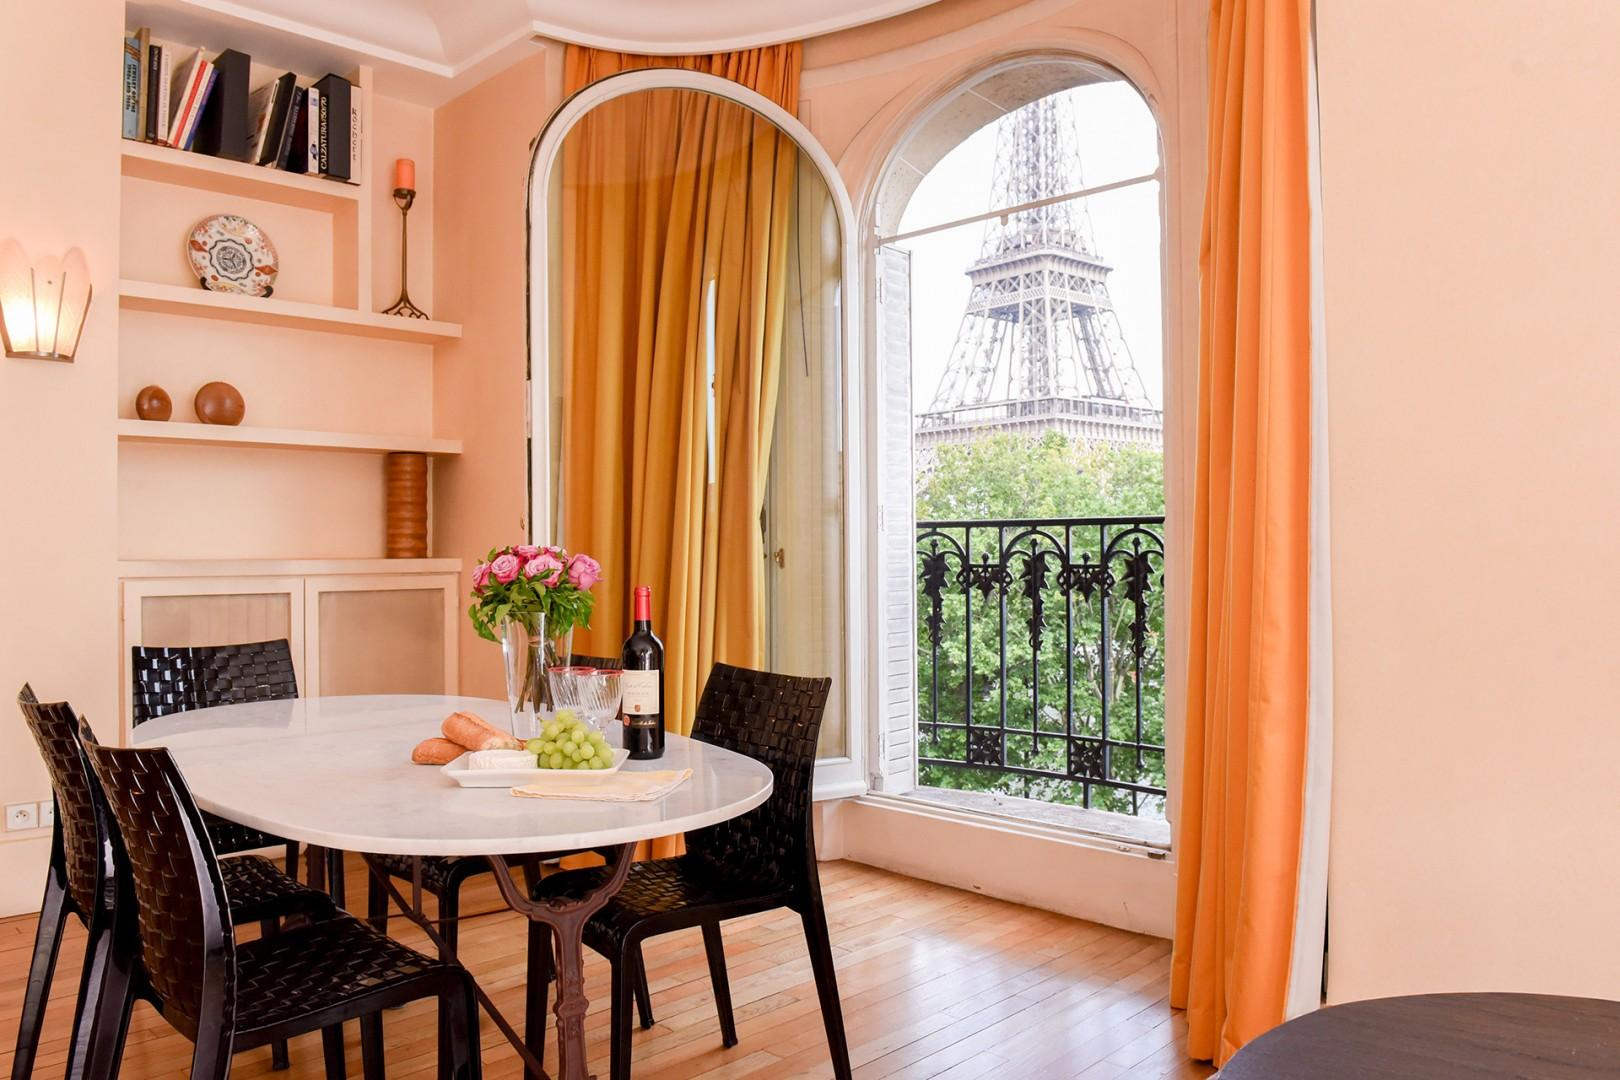 Welcome to the lovely Roussanne with stunning Eiffel Tower views!